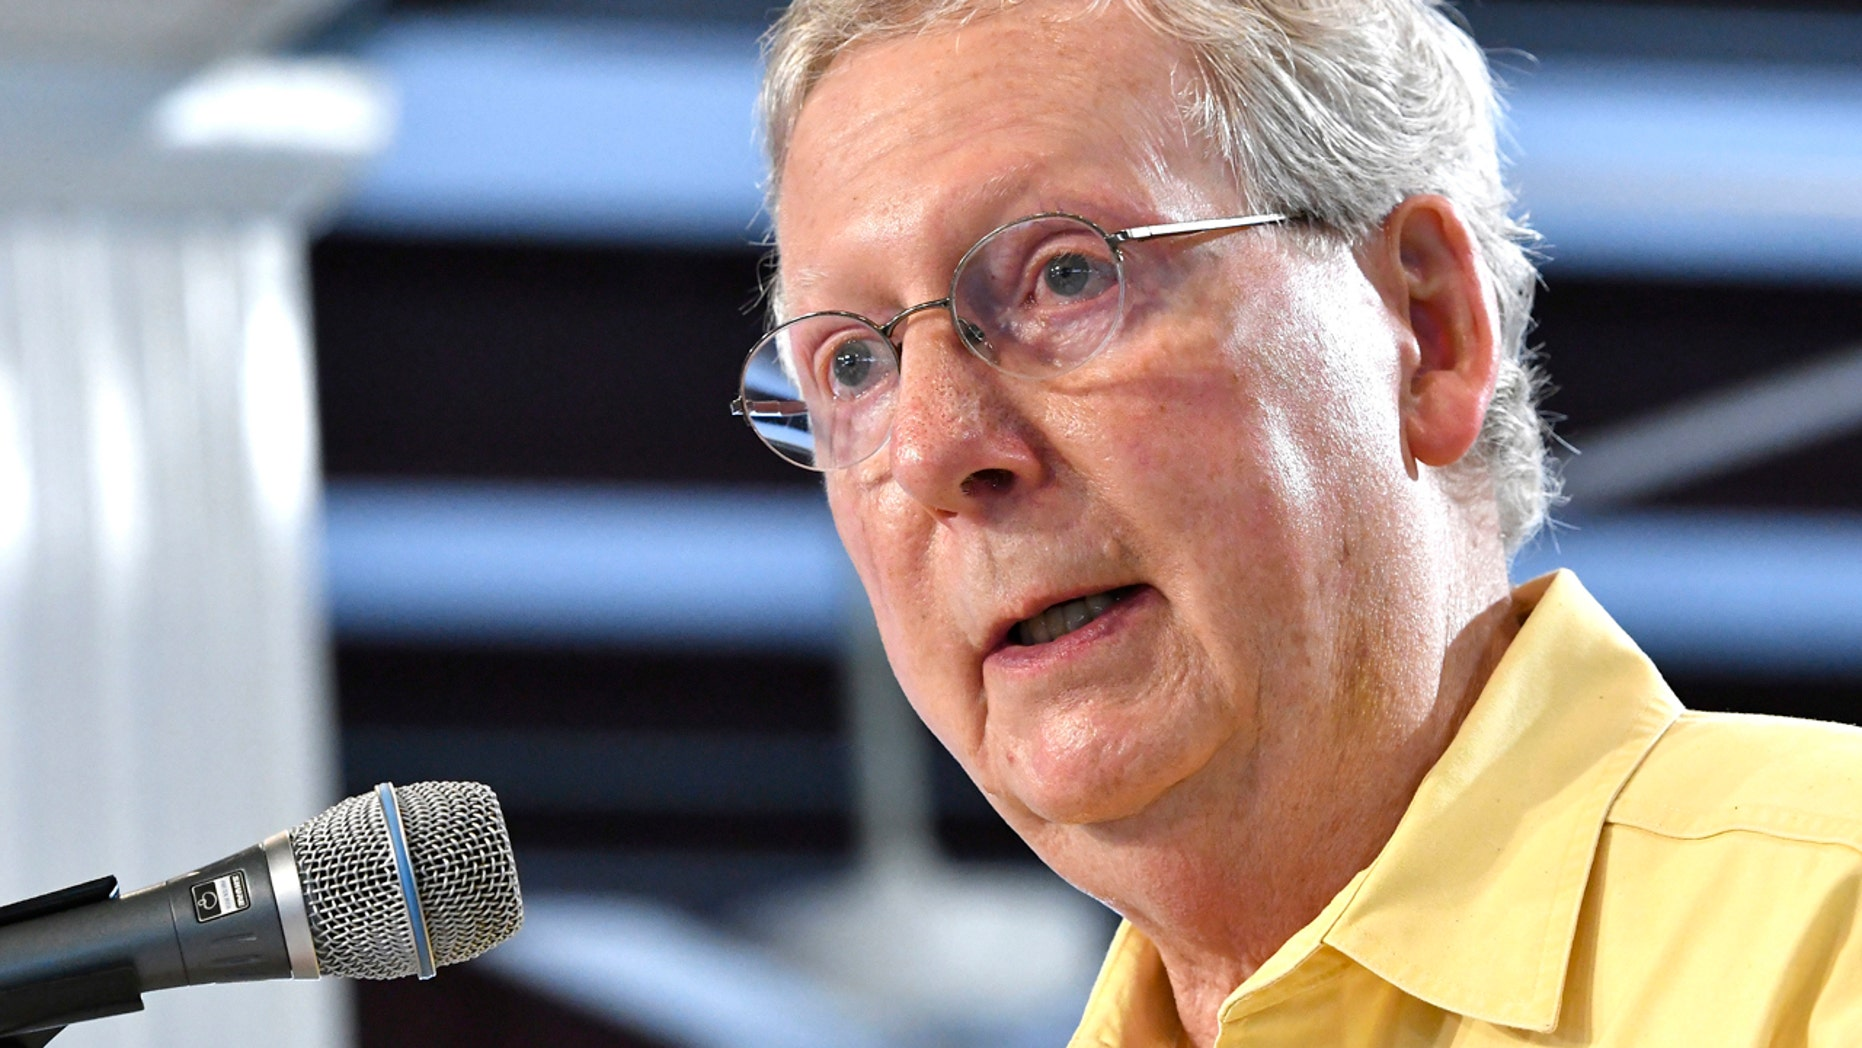 FILE - In this Aug. 6, 2016, file photo, Majority Leader Mitch McConnell of Kentucky, addresses the crowd gathered at the Fancy Farm Picnic in Fancy Farm Ky.